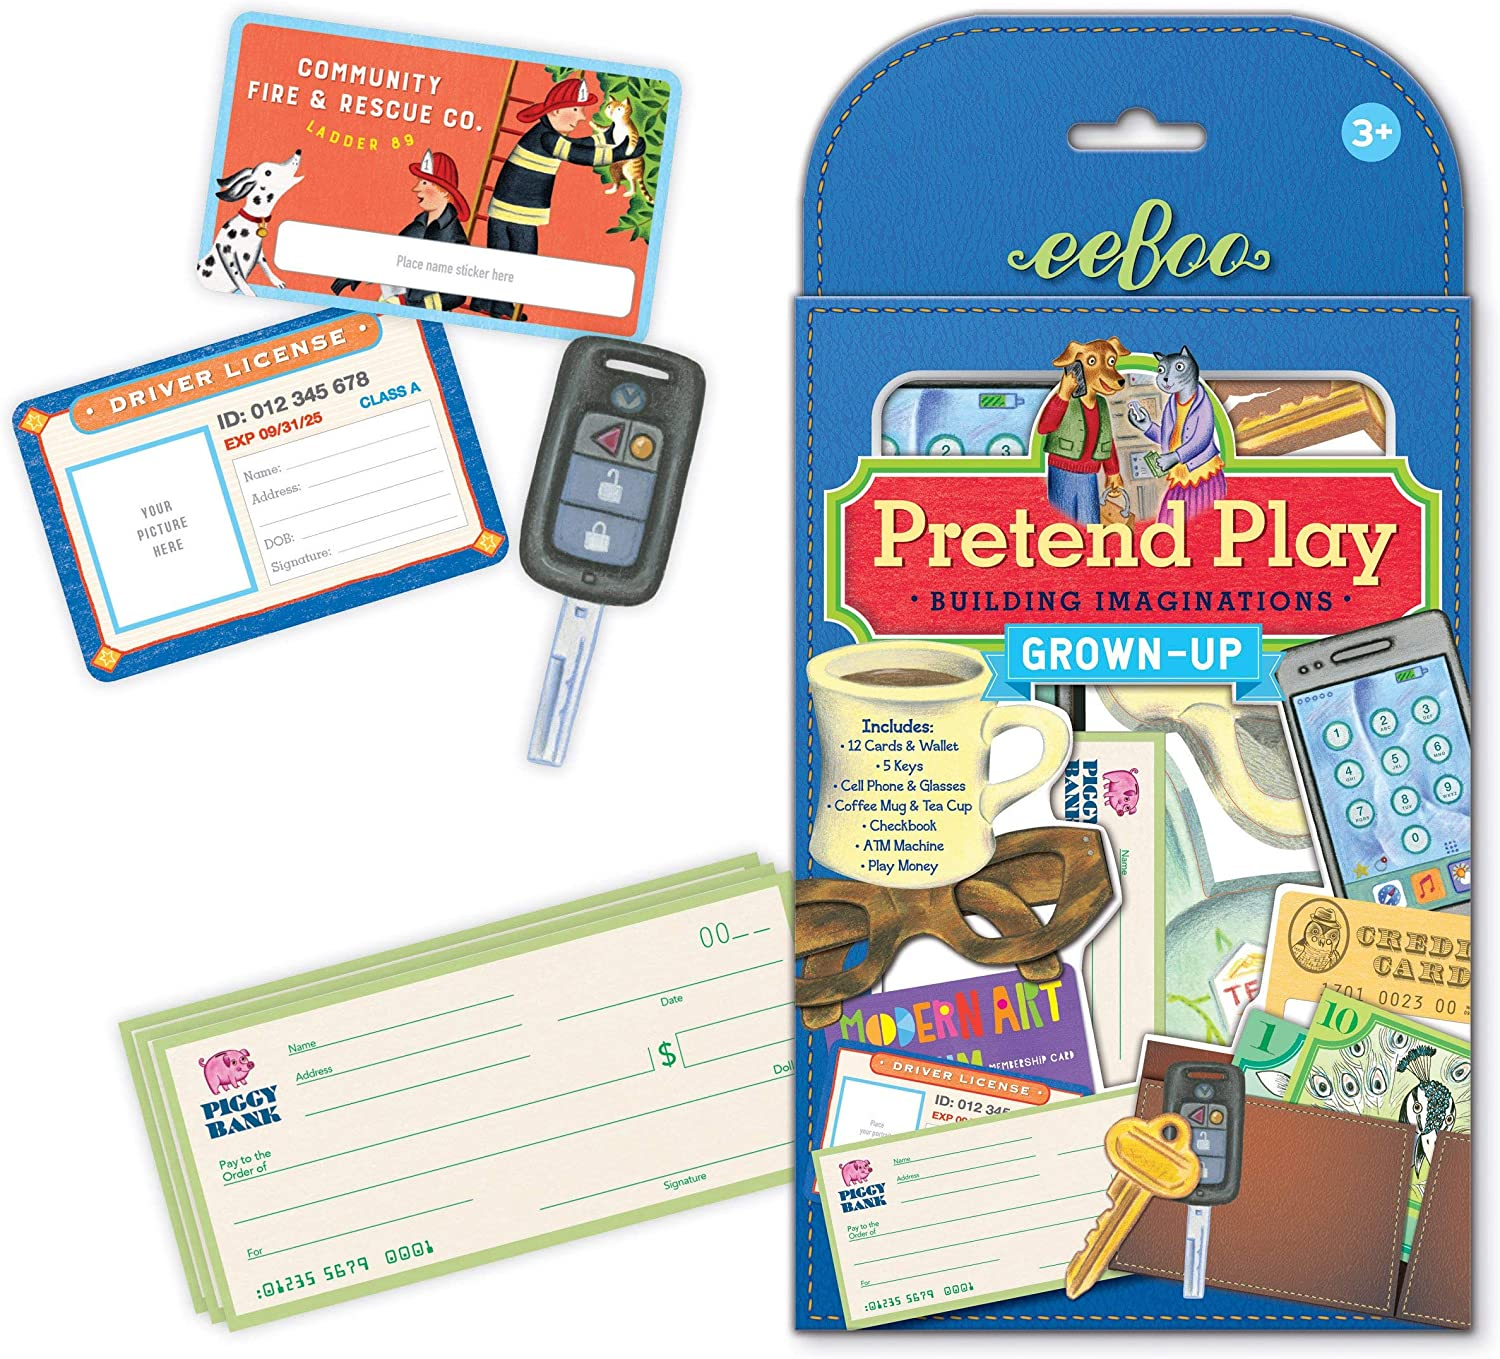 eeBoo Grown Up Pretend Play Set for Kids